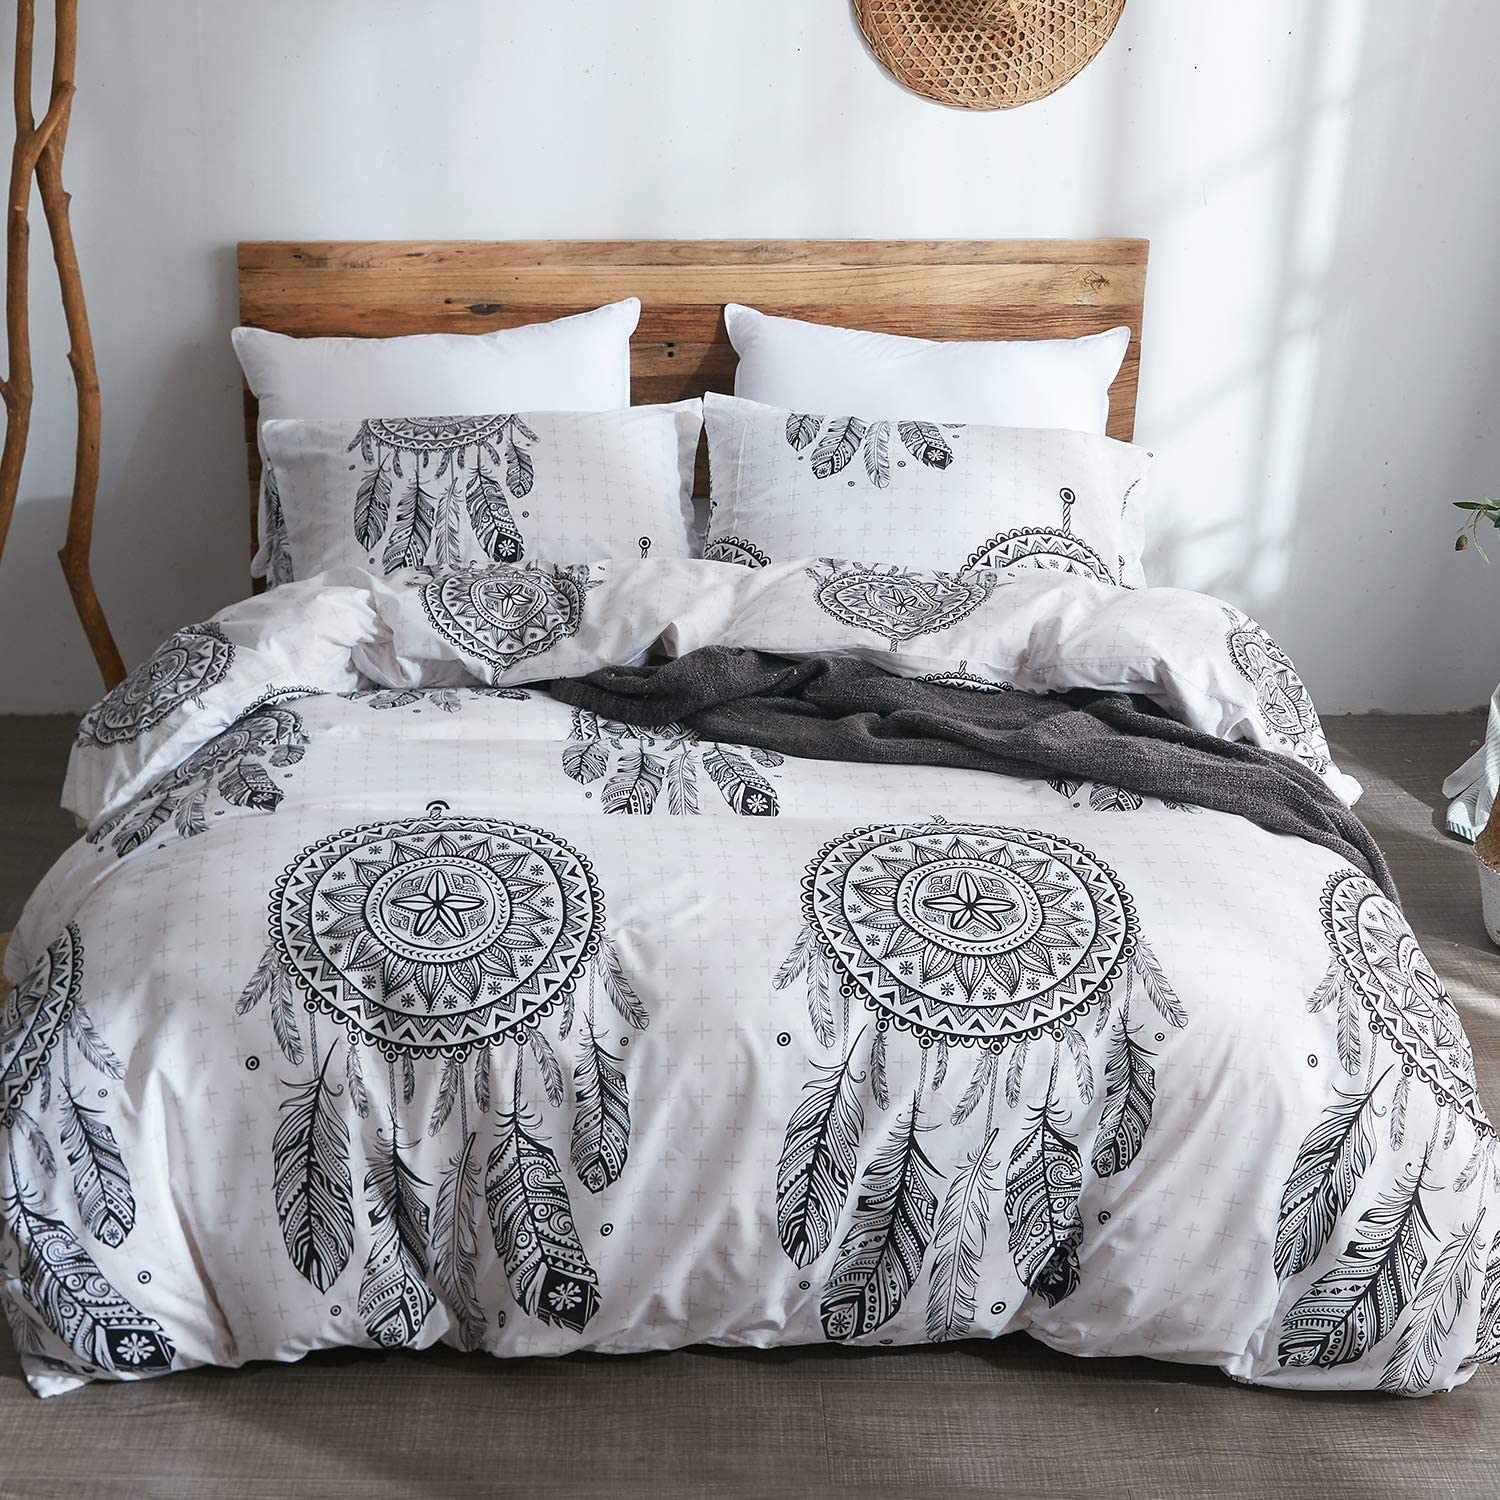 LAMEJOR Duvet Cover Set Queen Size Bohemian Dreamcatcher Pattern Luxury Soft Bedding Set Comforter Cover (1 Duvet Cover+2 Pillowcases) White